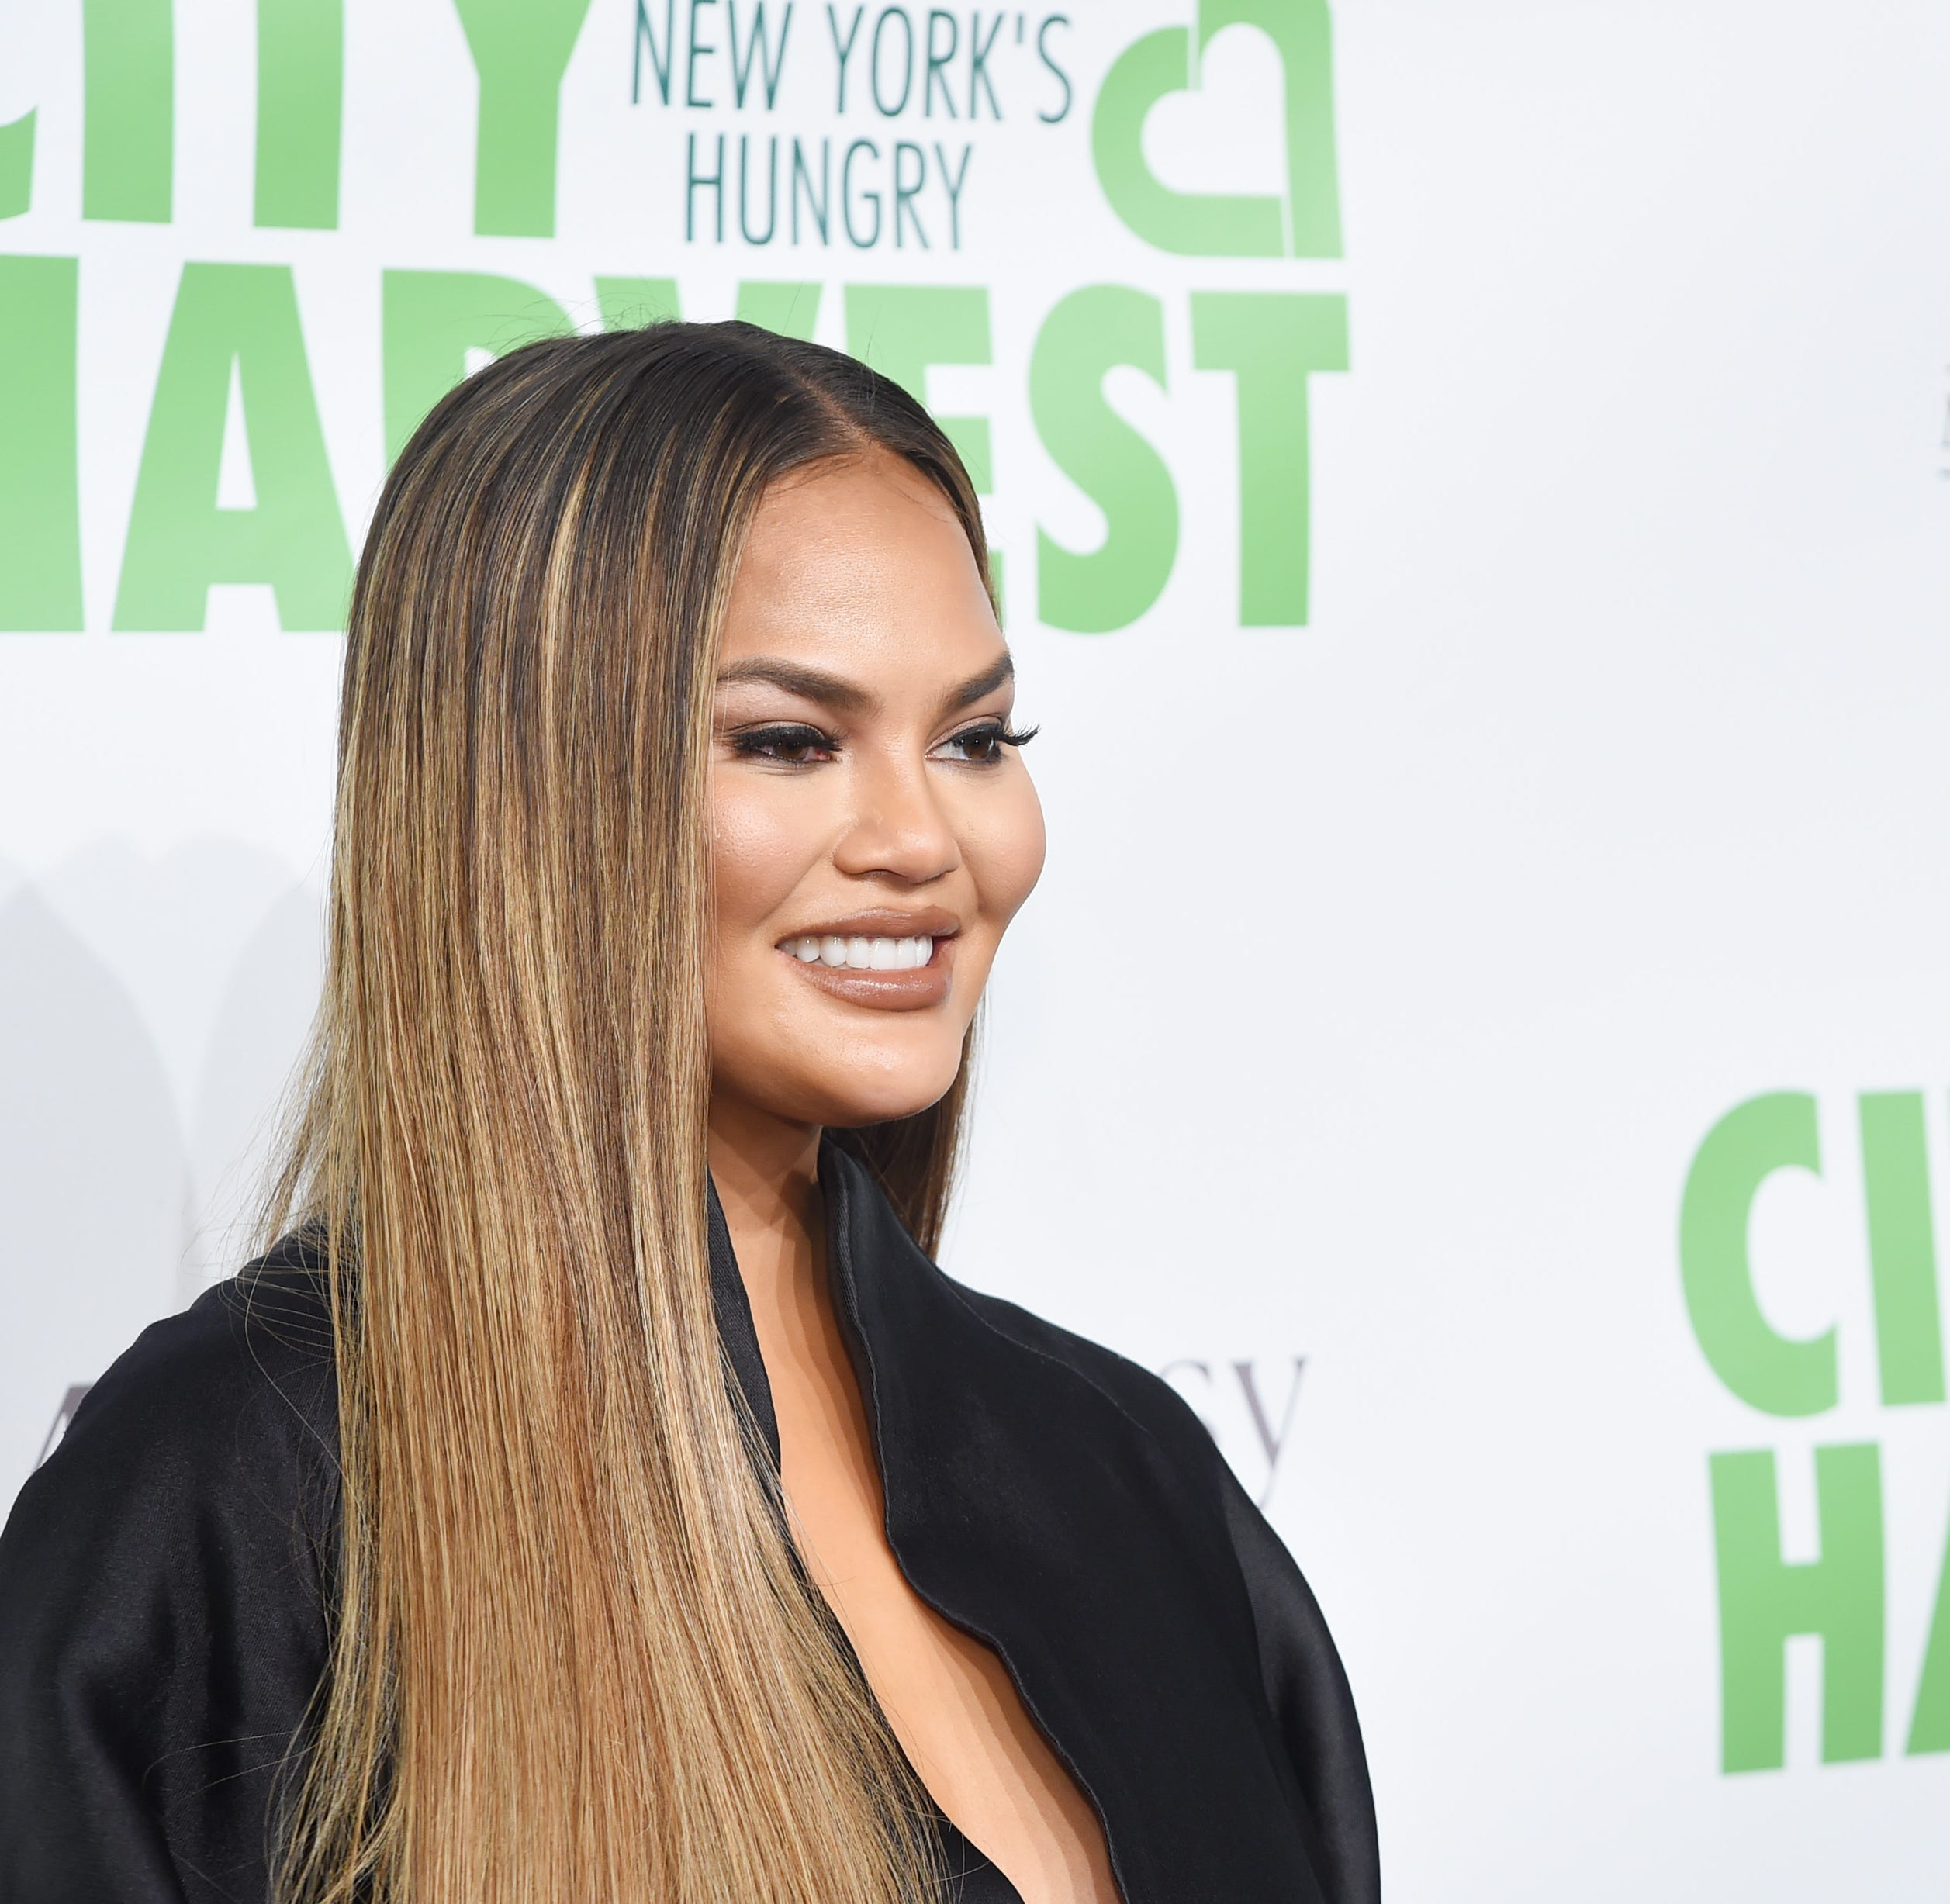 Chrissy Teigen got turned into an iconic meme during the 2015 Golden Globe awards.